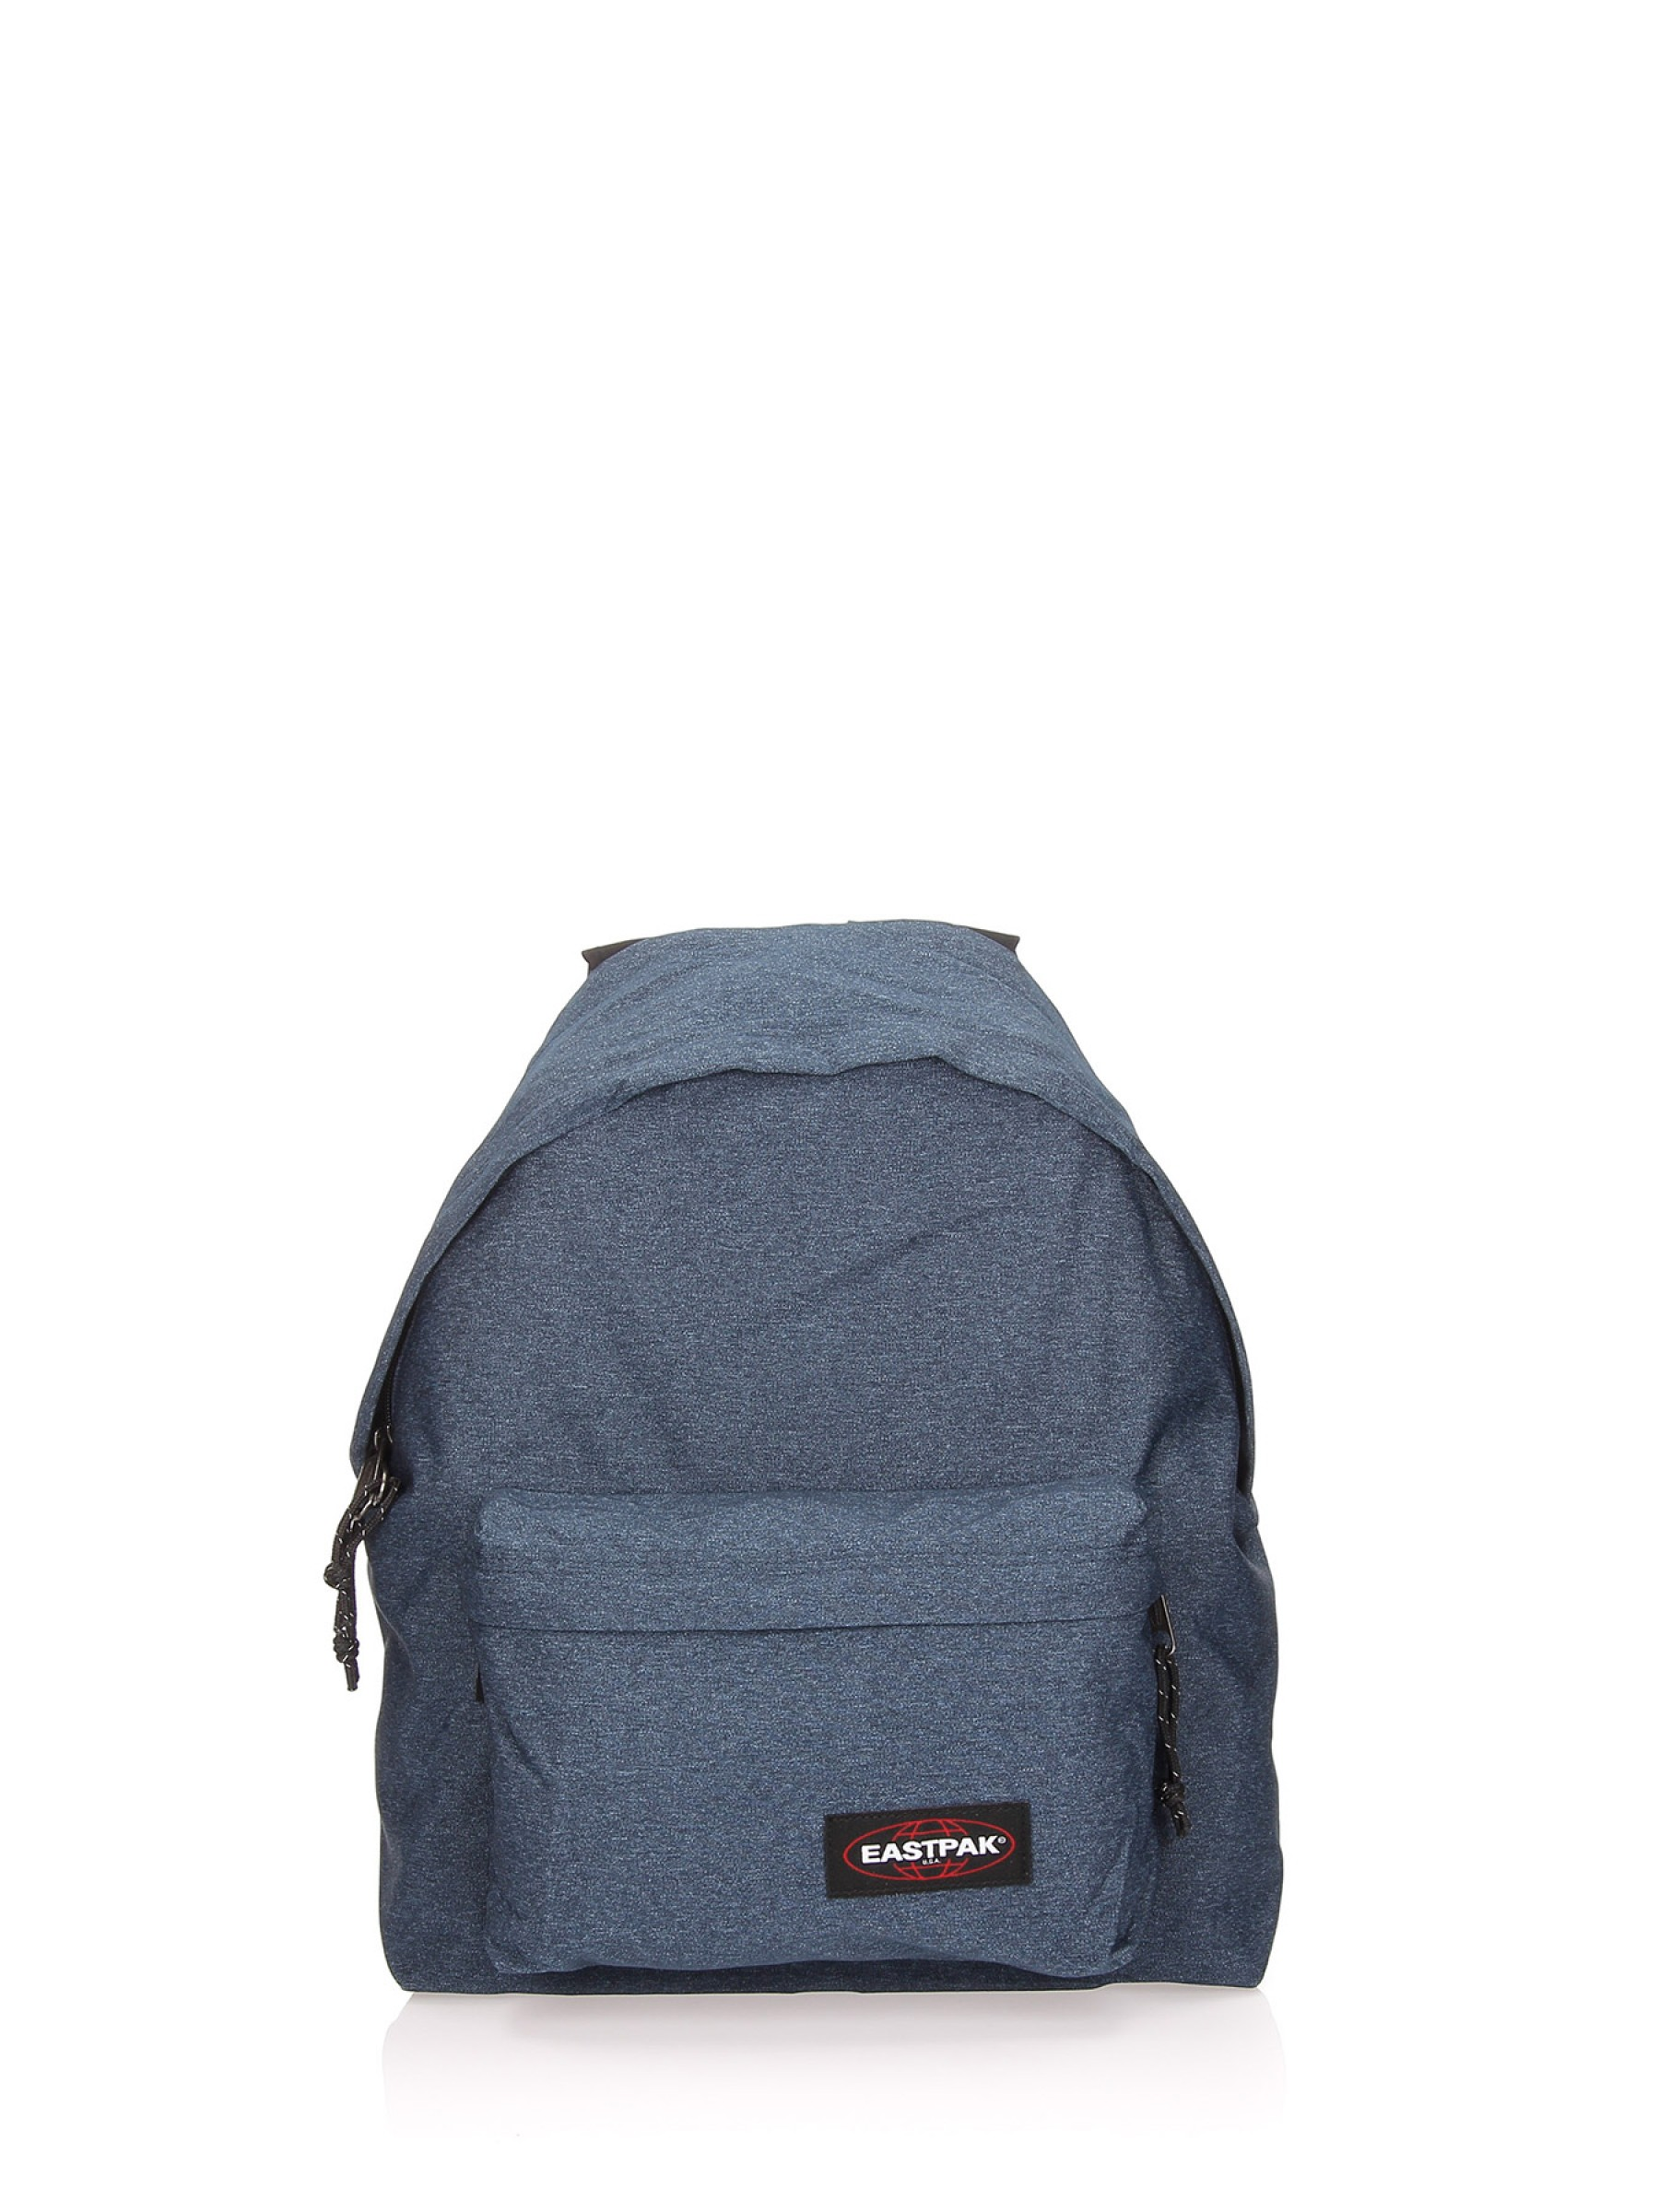 PADDED-DOUBLEDENIM - Eastpak - P18